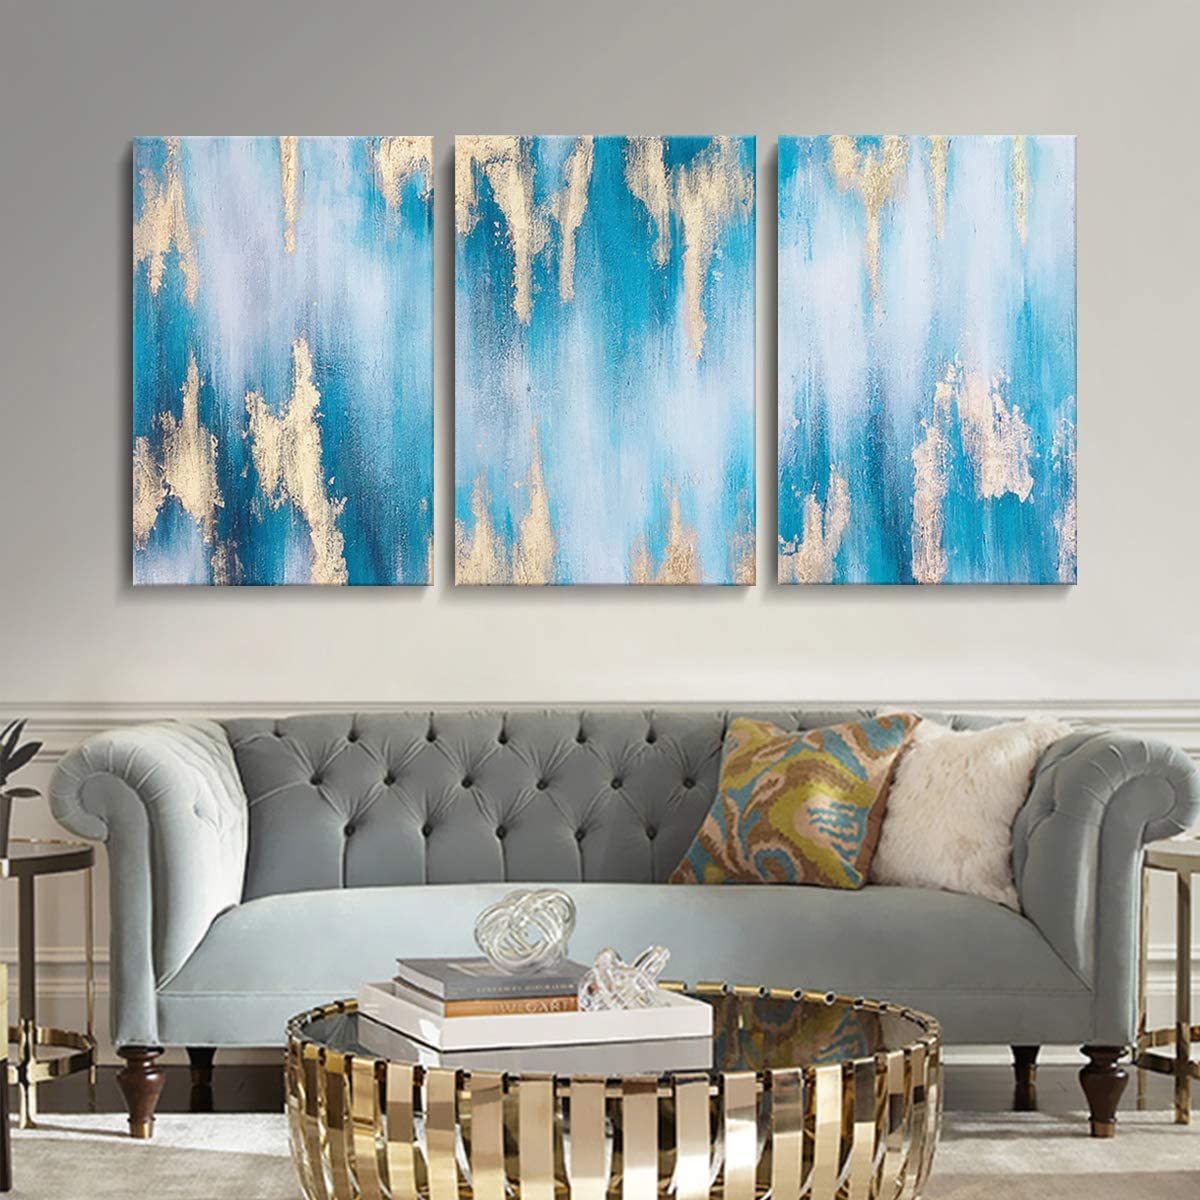 SDYA Hand Painted Large Blue Abstract Gold-Lined Oil Paintings Wall Art Canvas Art 24inches by 36inches X 3PCS Framed and Stretched 3 Panels